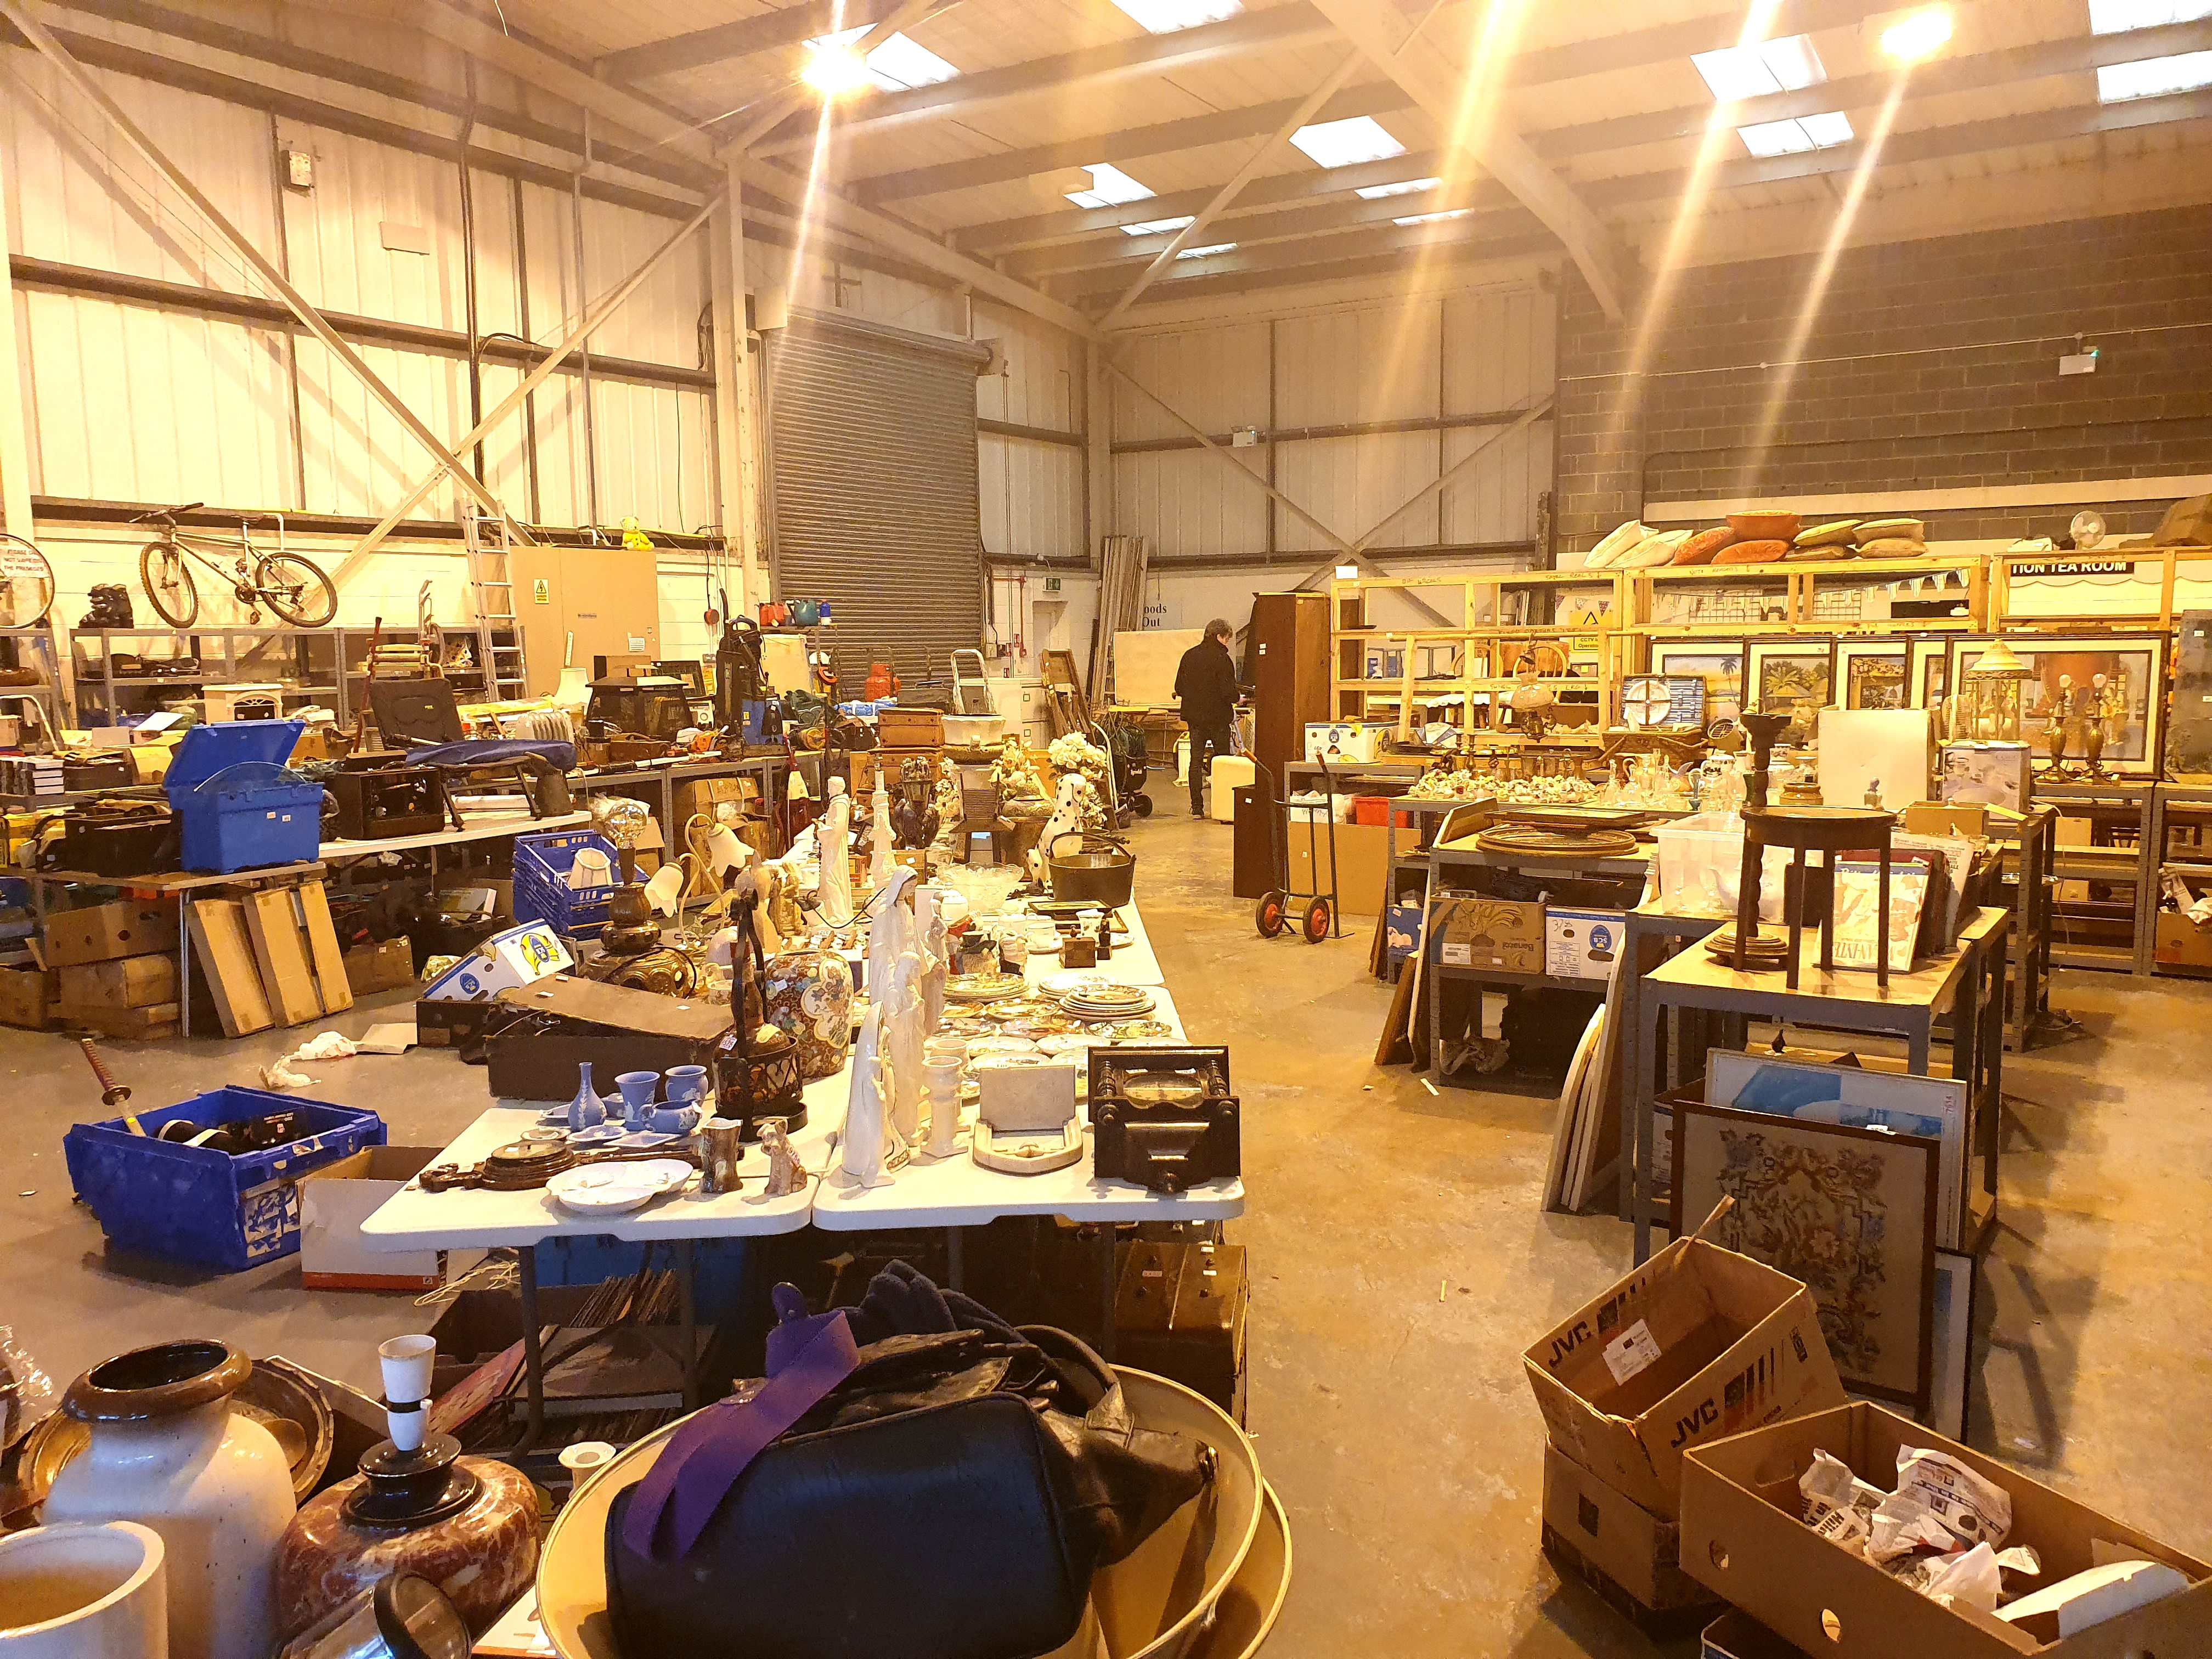 This auction is online only, through our two online bidding platforms. We will be closed to the